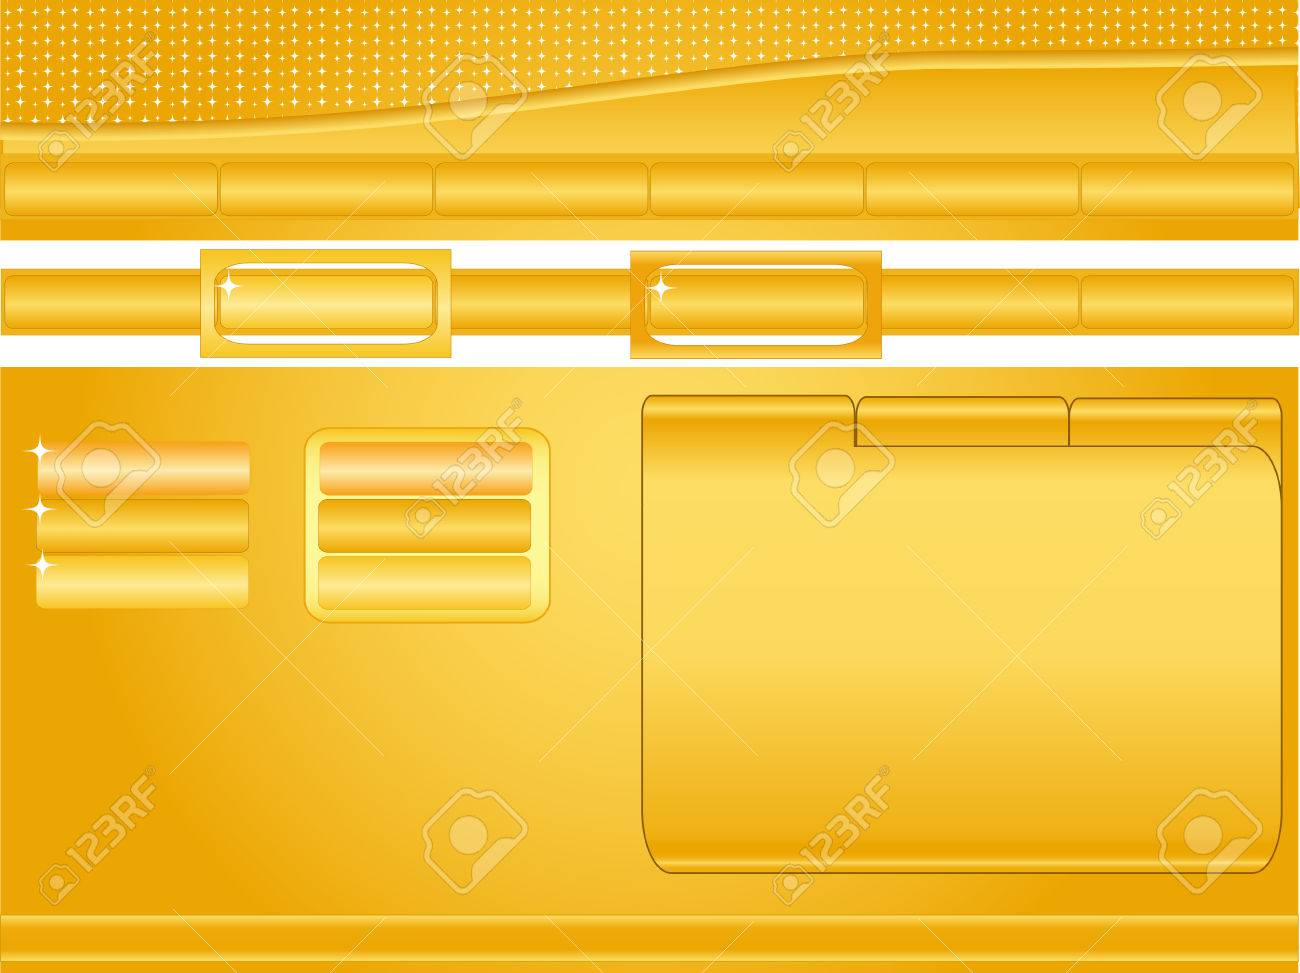 Orange and yellow, glossy website template with buttons, headers, banner space and text window Stock Vector - 3057361